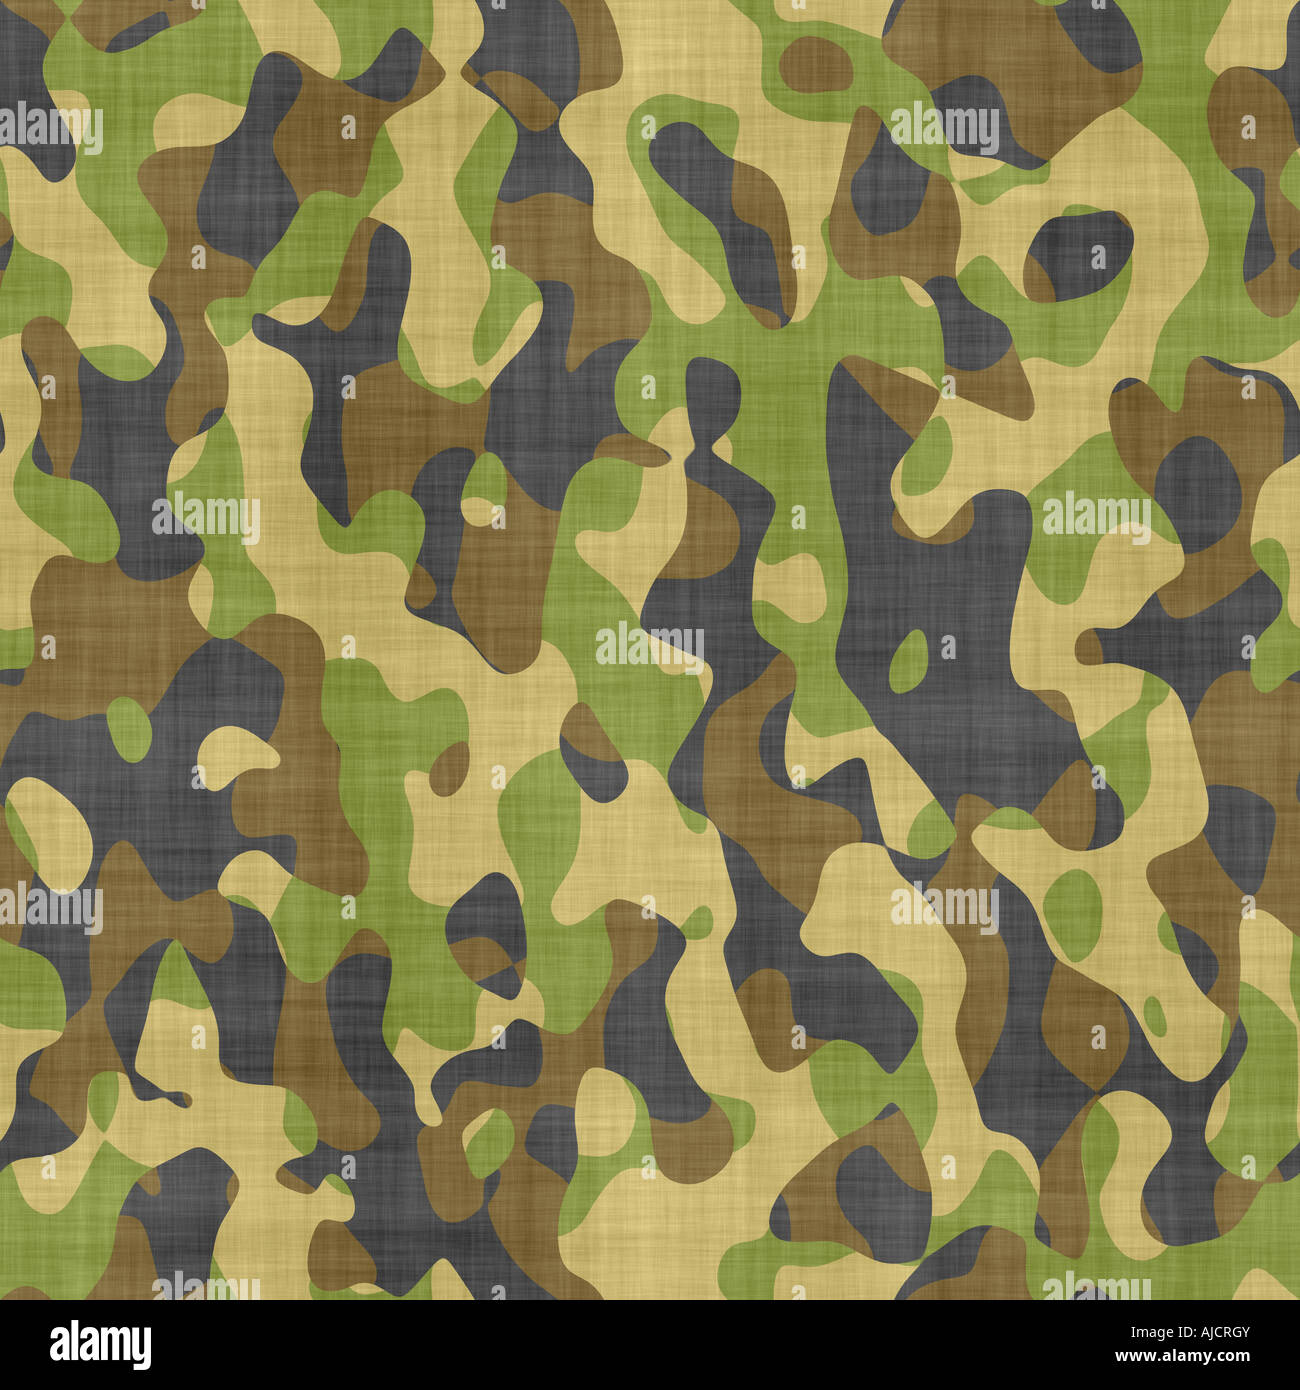 large seamless image of cloth printed with military camouflage pattern - Stock Image